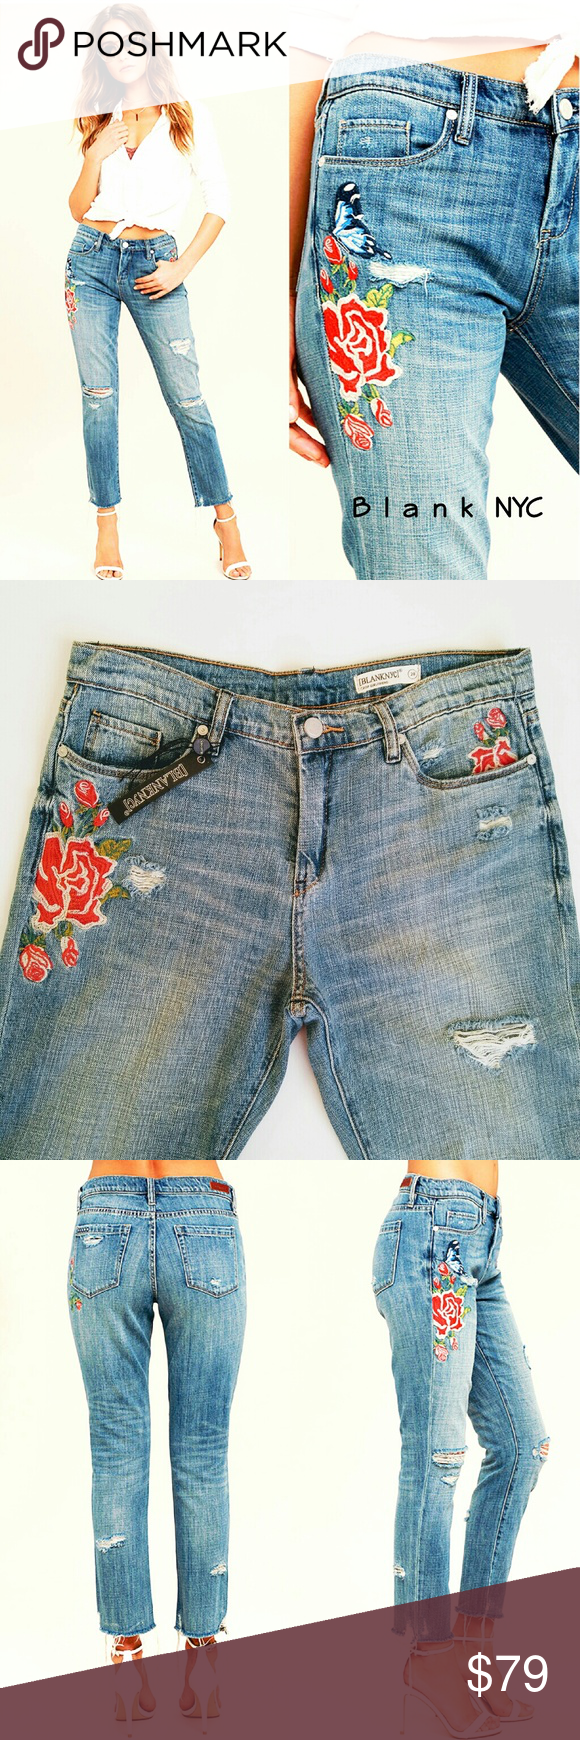 a732bdd8 Blank NYC | embroidered distressed jeans 28 Blank NYC crop girlfriend light  was embroidered jeans.